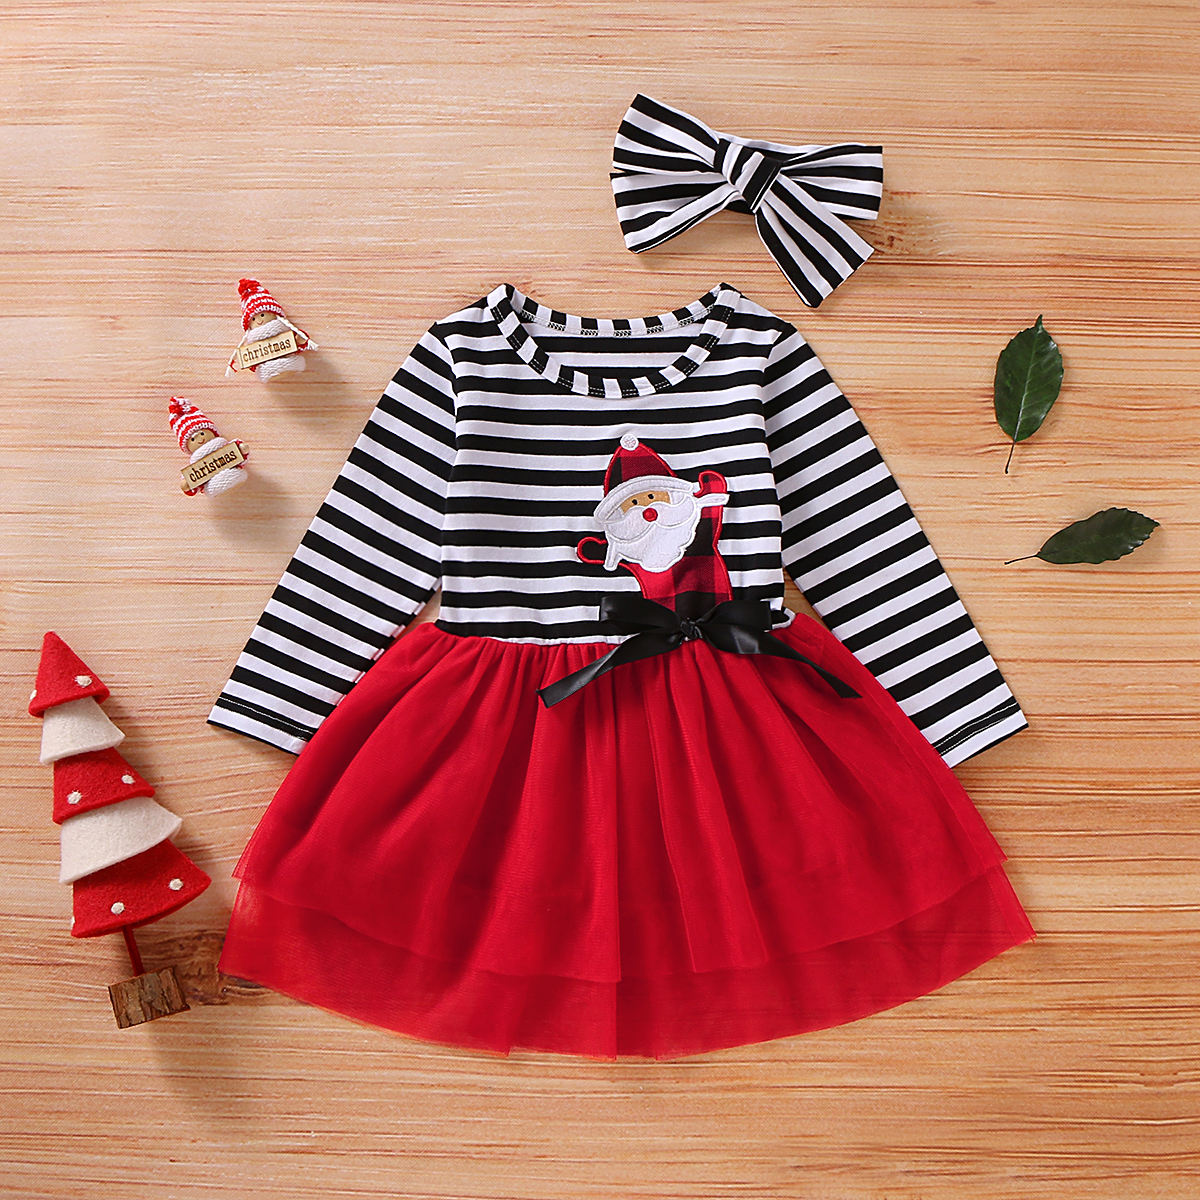 Christmas baby girl clothes long sleeve stripe tops+gauzy skirt+headband 3pcs outfits baby girl clothing sets